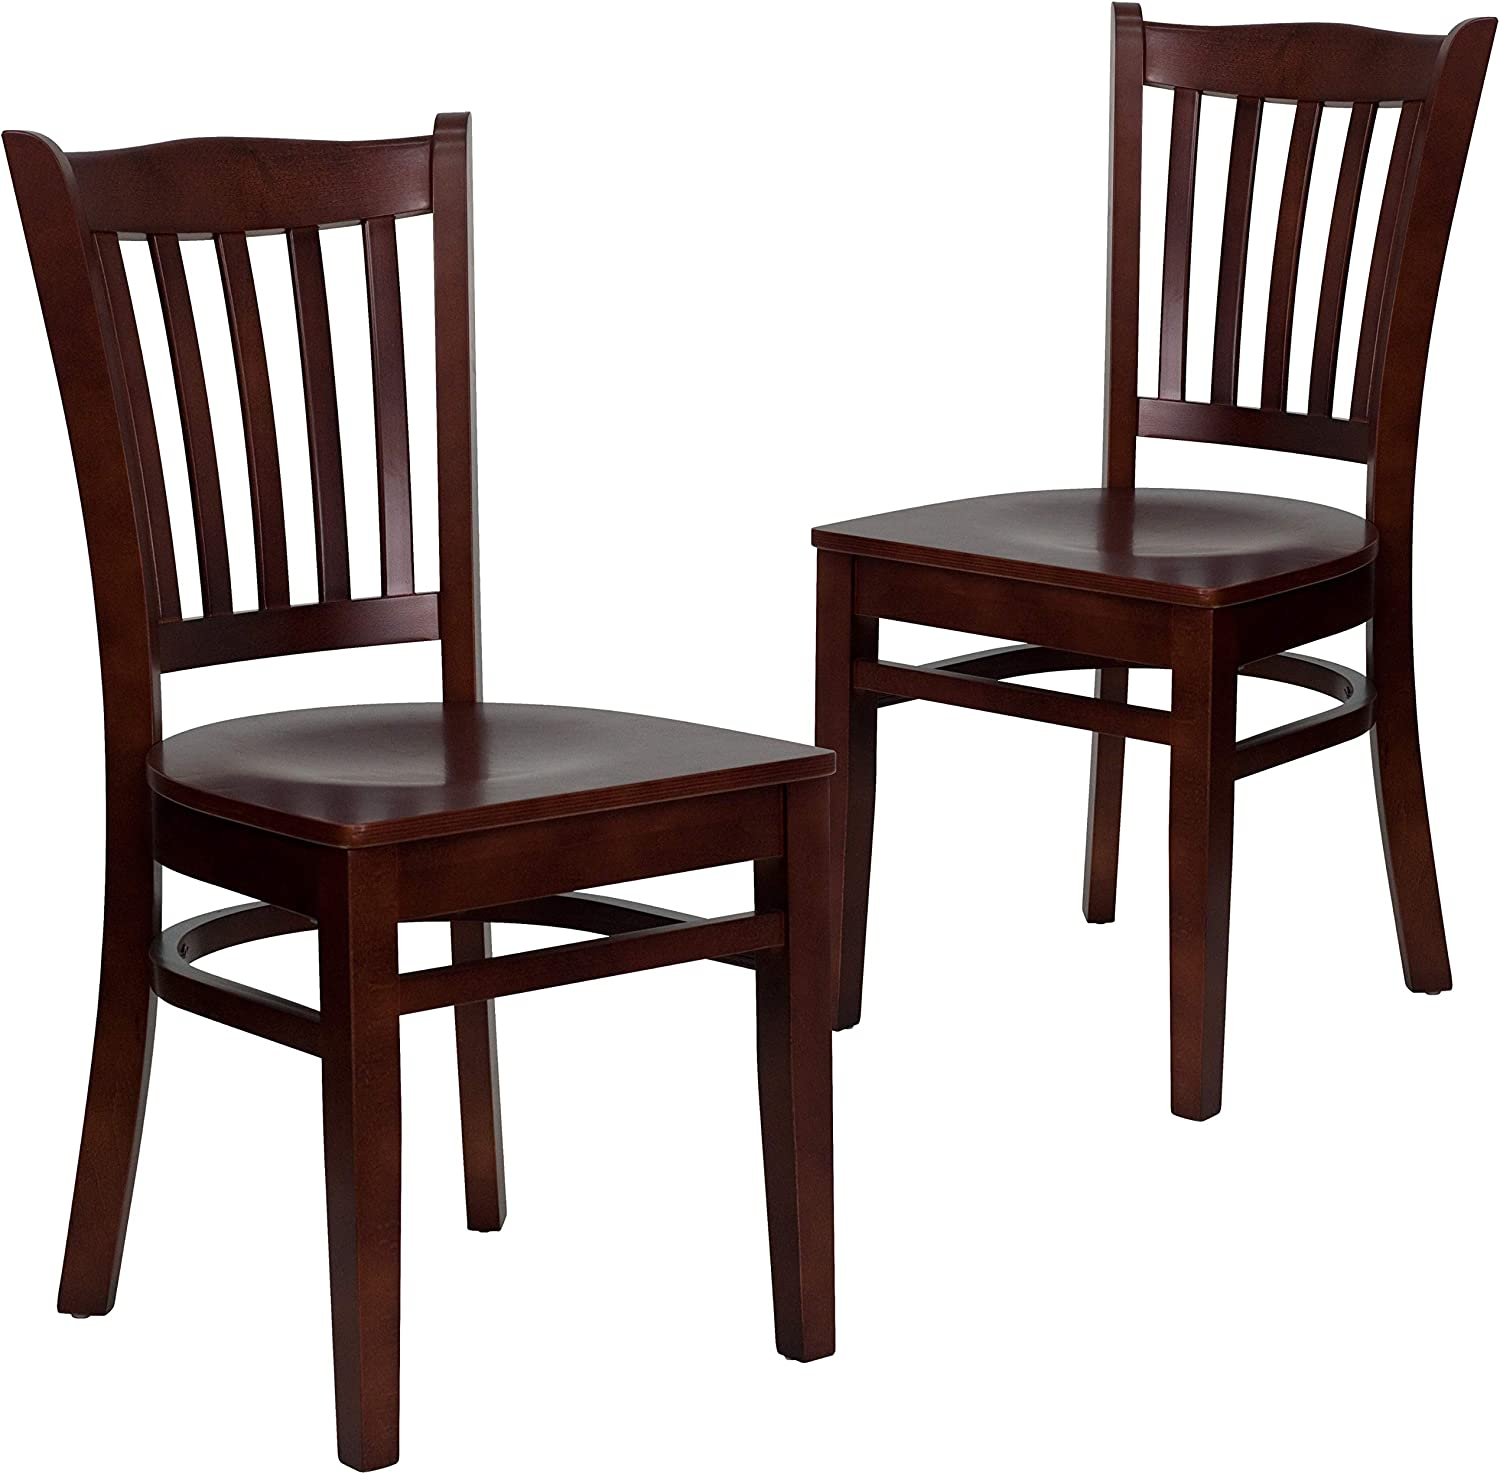 Flash Furniture 2 Pk. HERCULES Series Vertical Slat Back Mahogany Wood Restaurant Chair